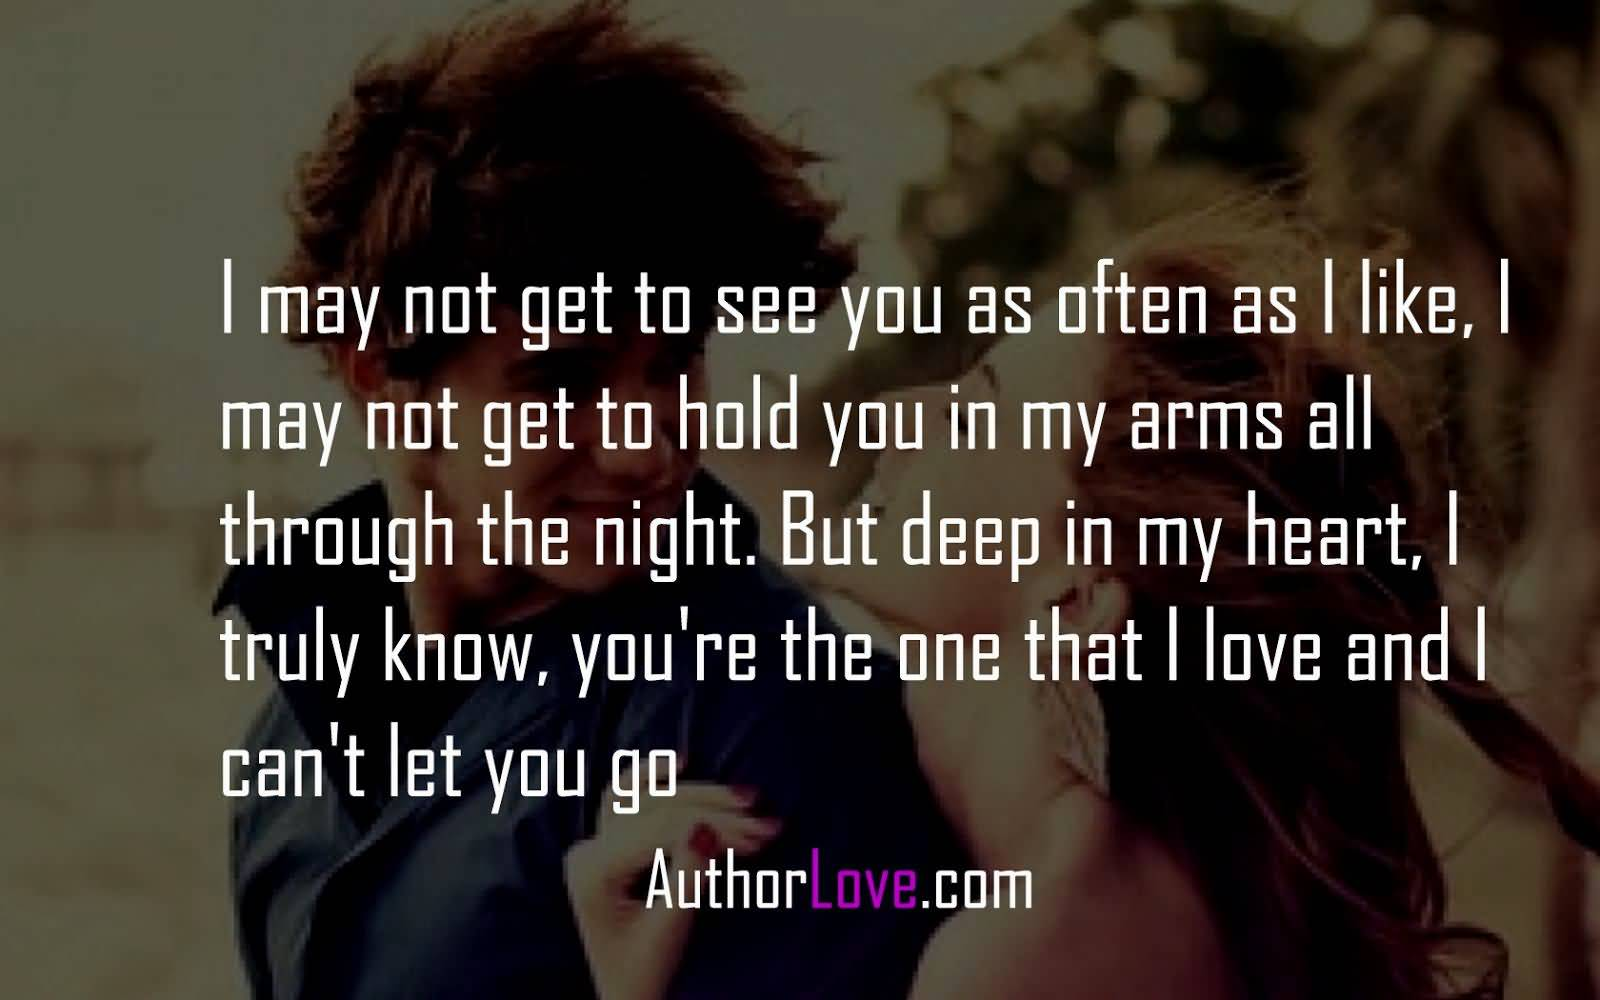 Deep Love Quotes For Him: 20 Deep Love Quotes For Him Pictures & Images